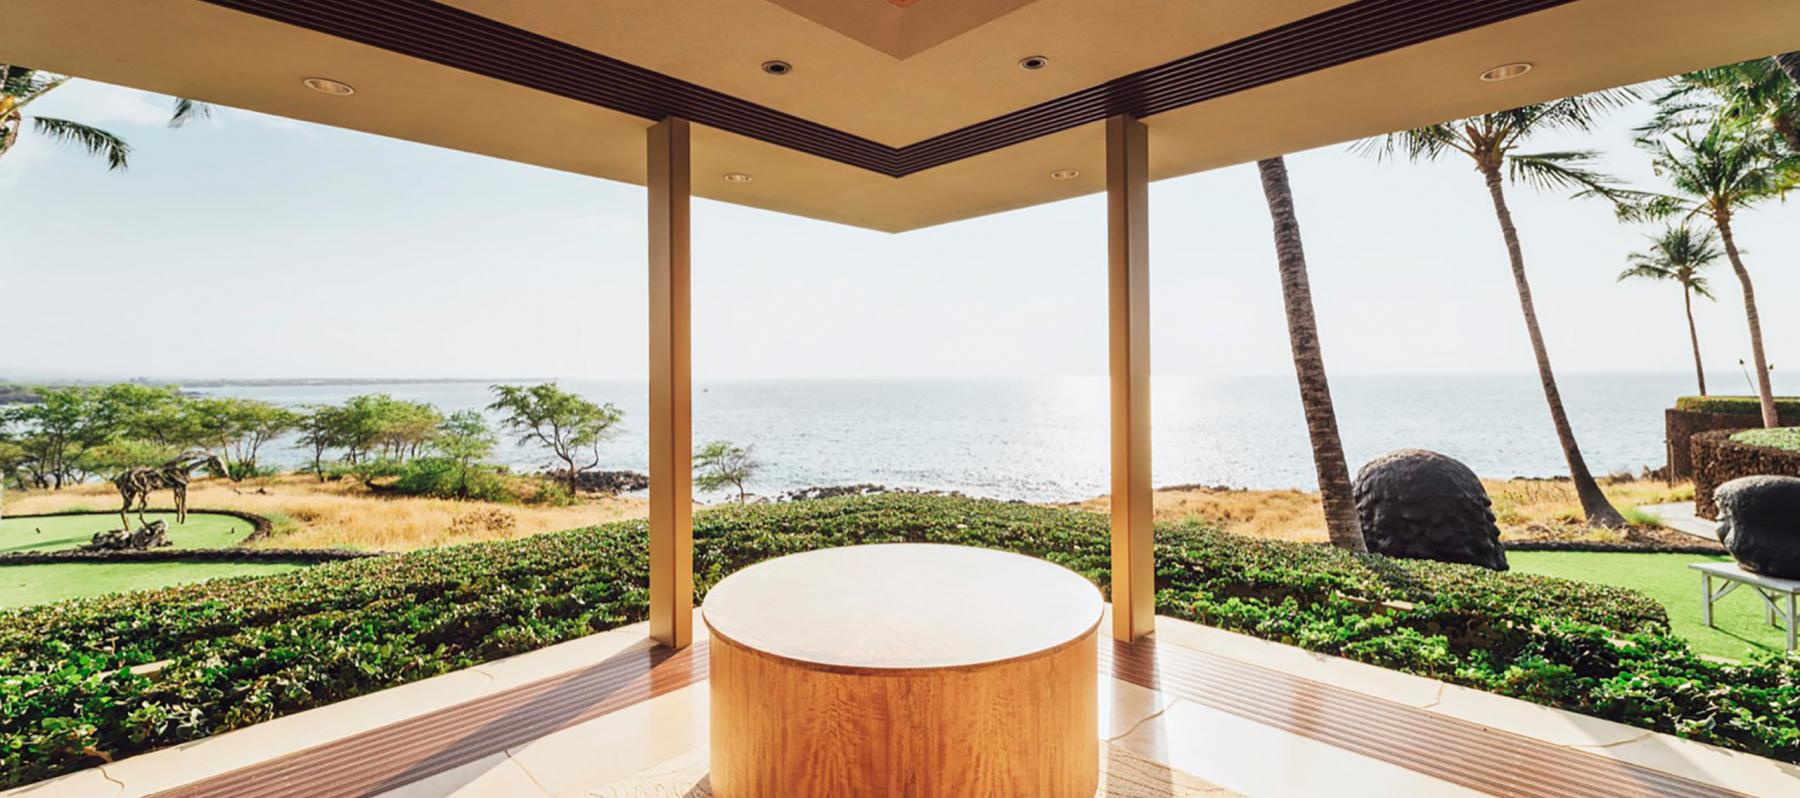 Large window facing ocean